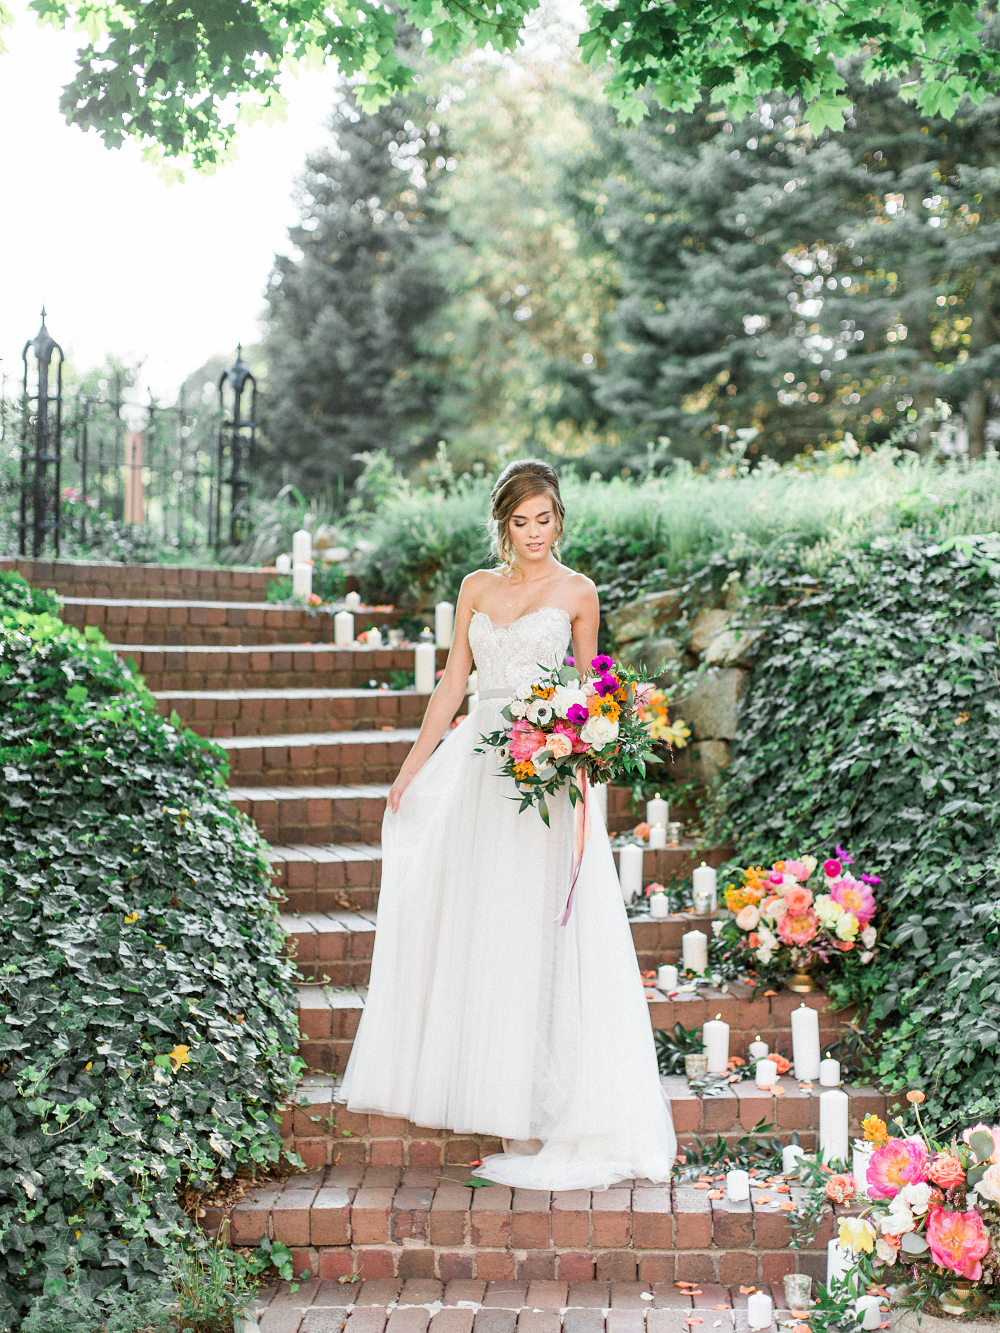 Whimsical Summer Wedding Styled Shoot at Henderson Castle Featured in WeddingDay Magazine Bride on Staircase